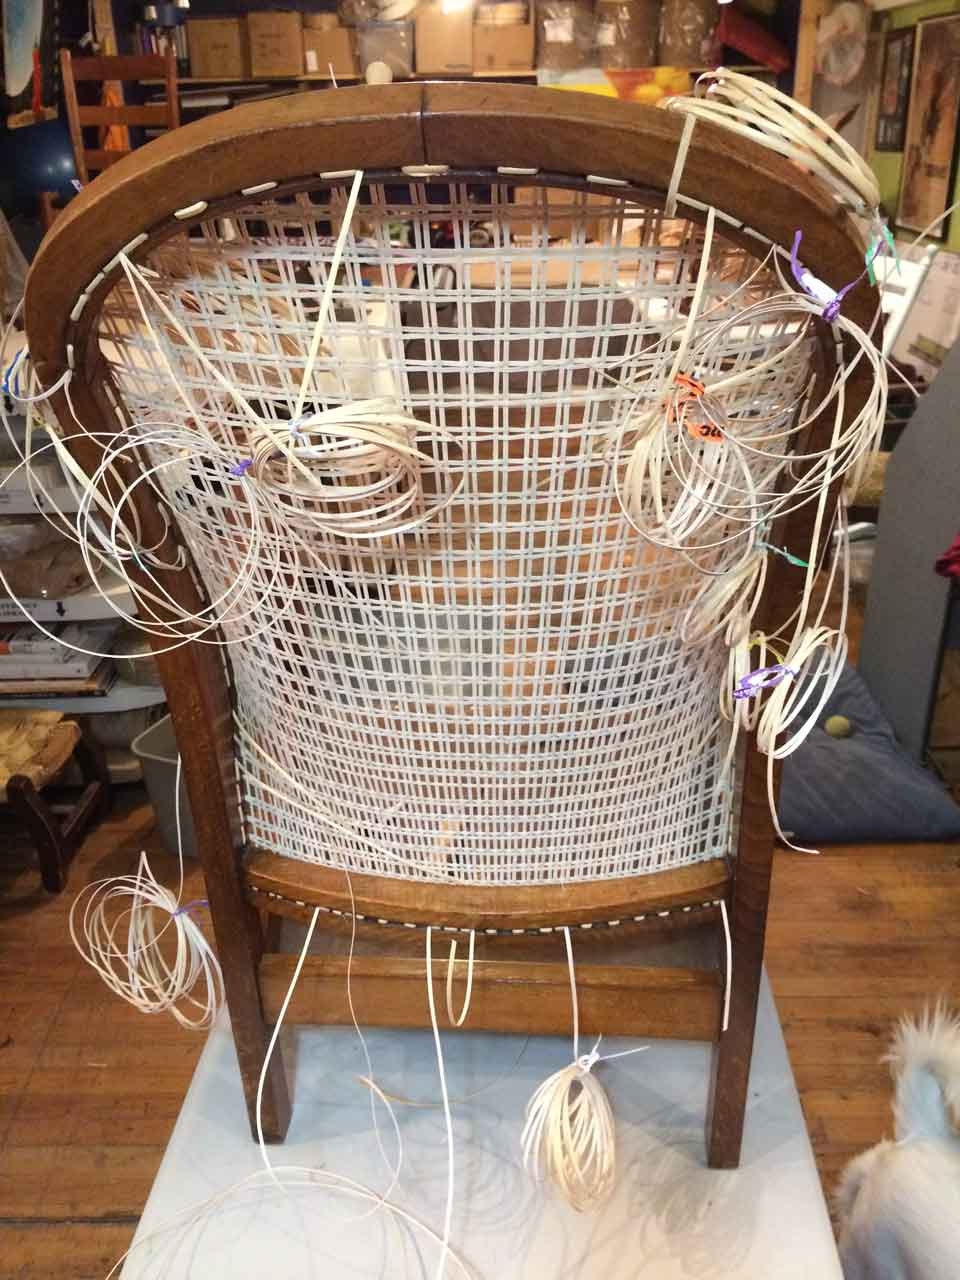 where can i buy cane for chairs korum fishing chair ebay silver river center caning curved back advanced lace srccc working